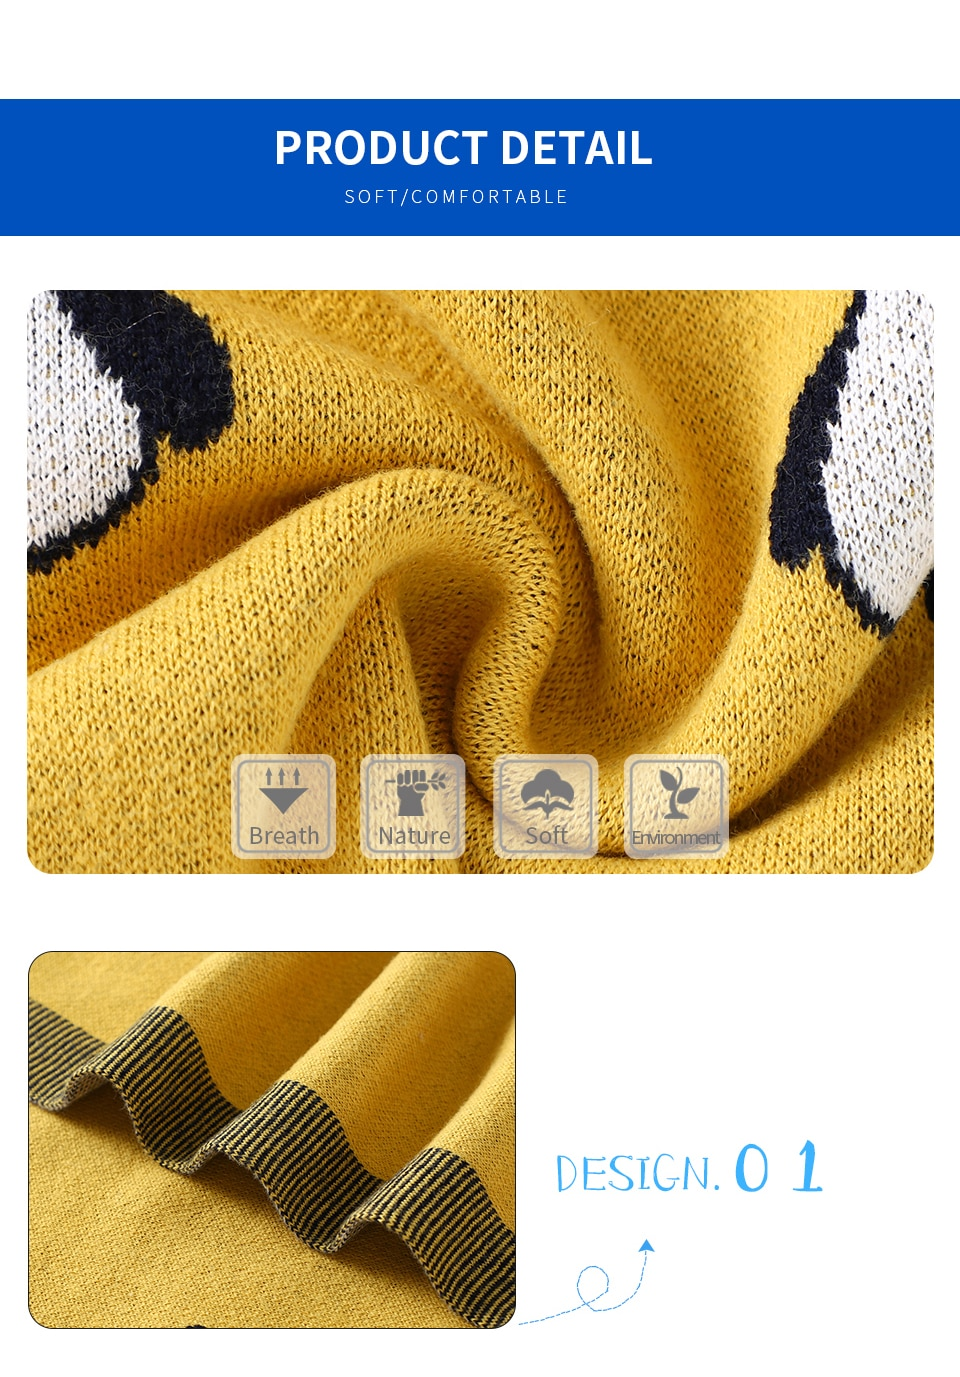 Super Soft Knitted Baby Blanket For Newborn Best Children's Lighting & Home Decor Online Store